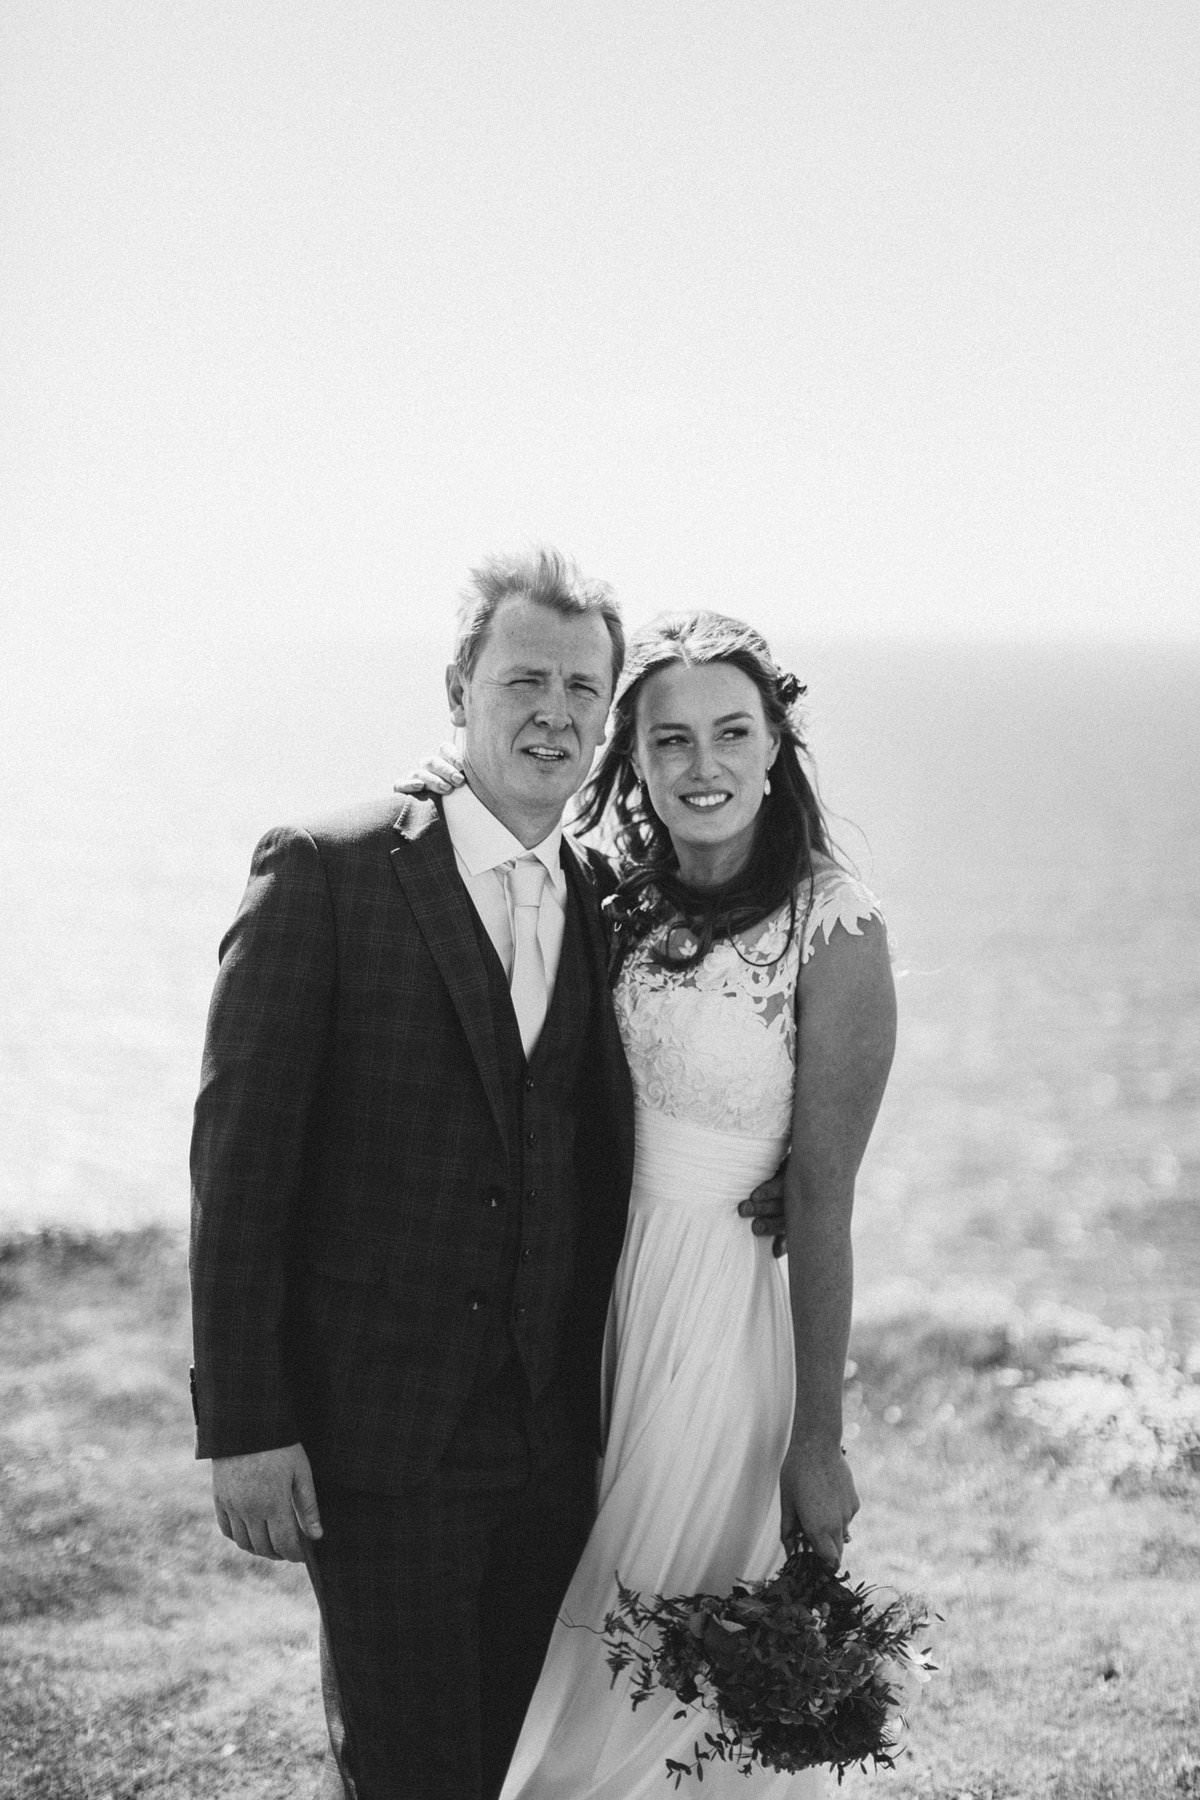 Doolin wedding - Cliffs of Moher wedding photography 0195